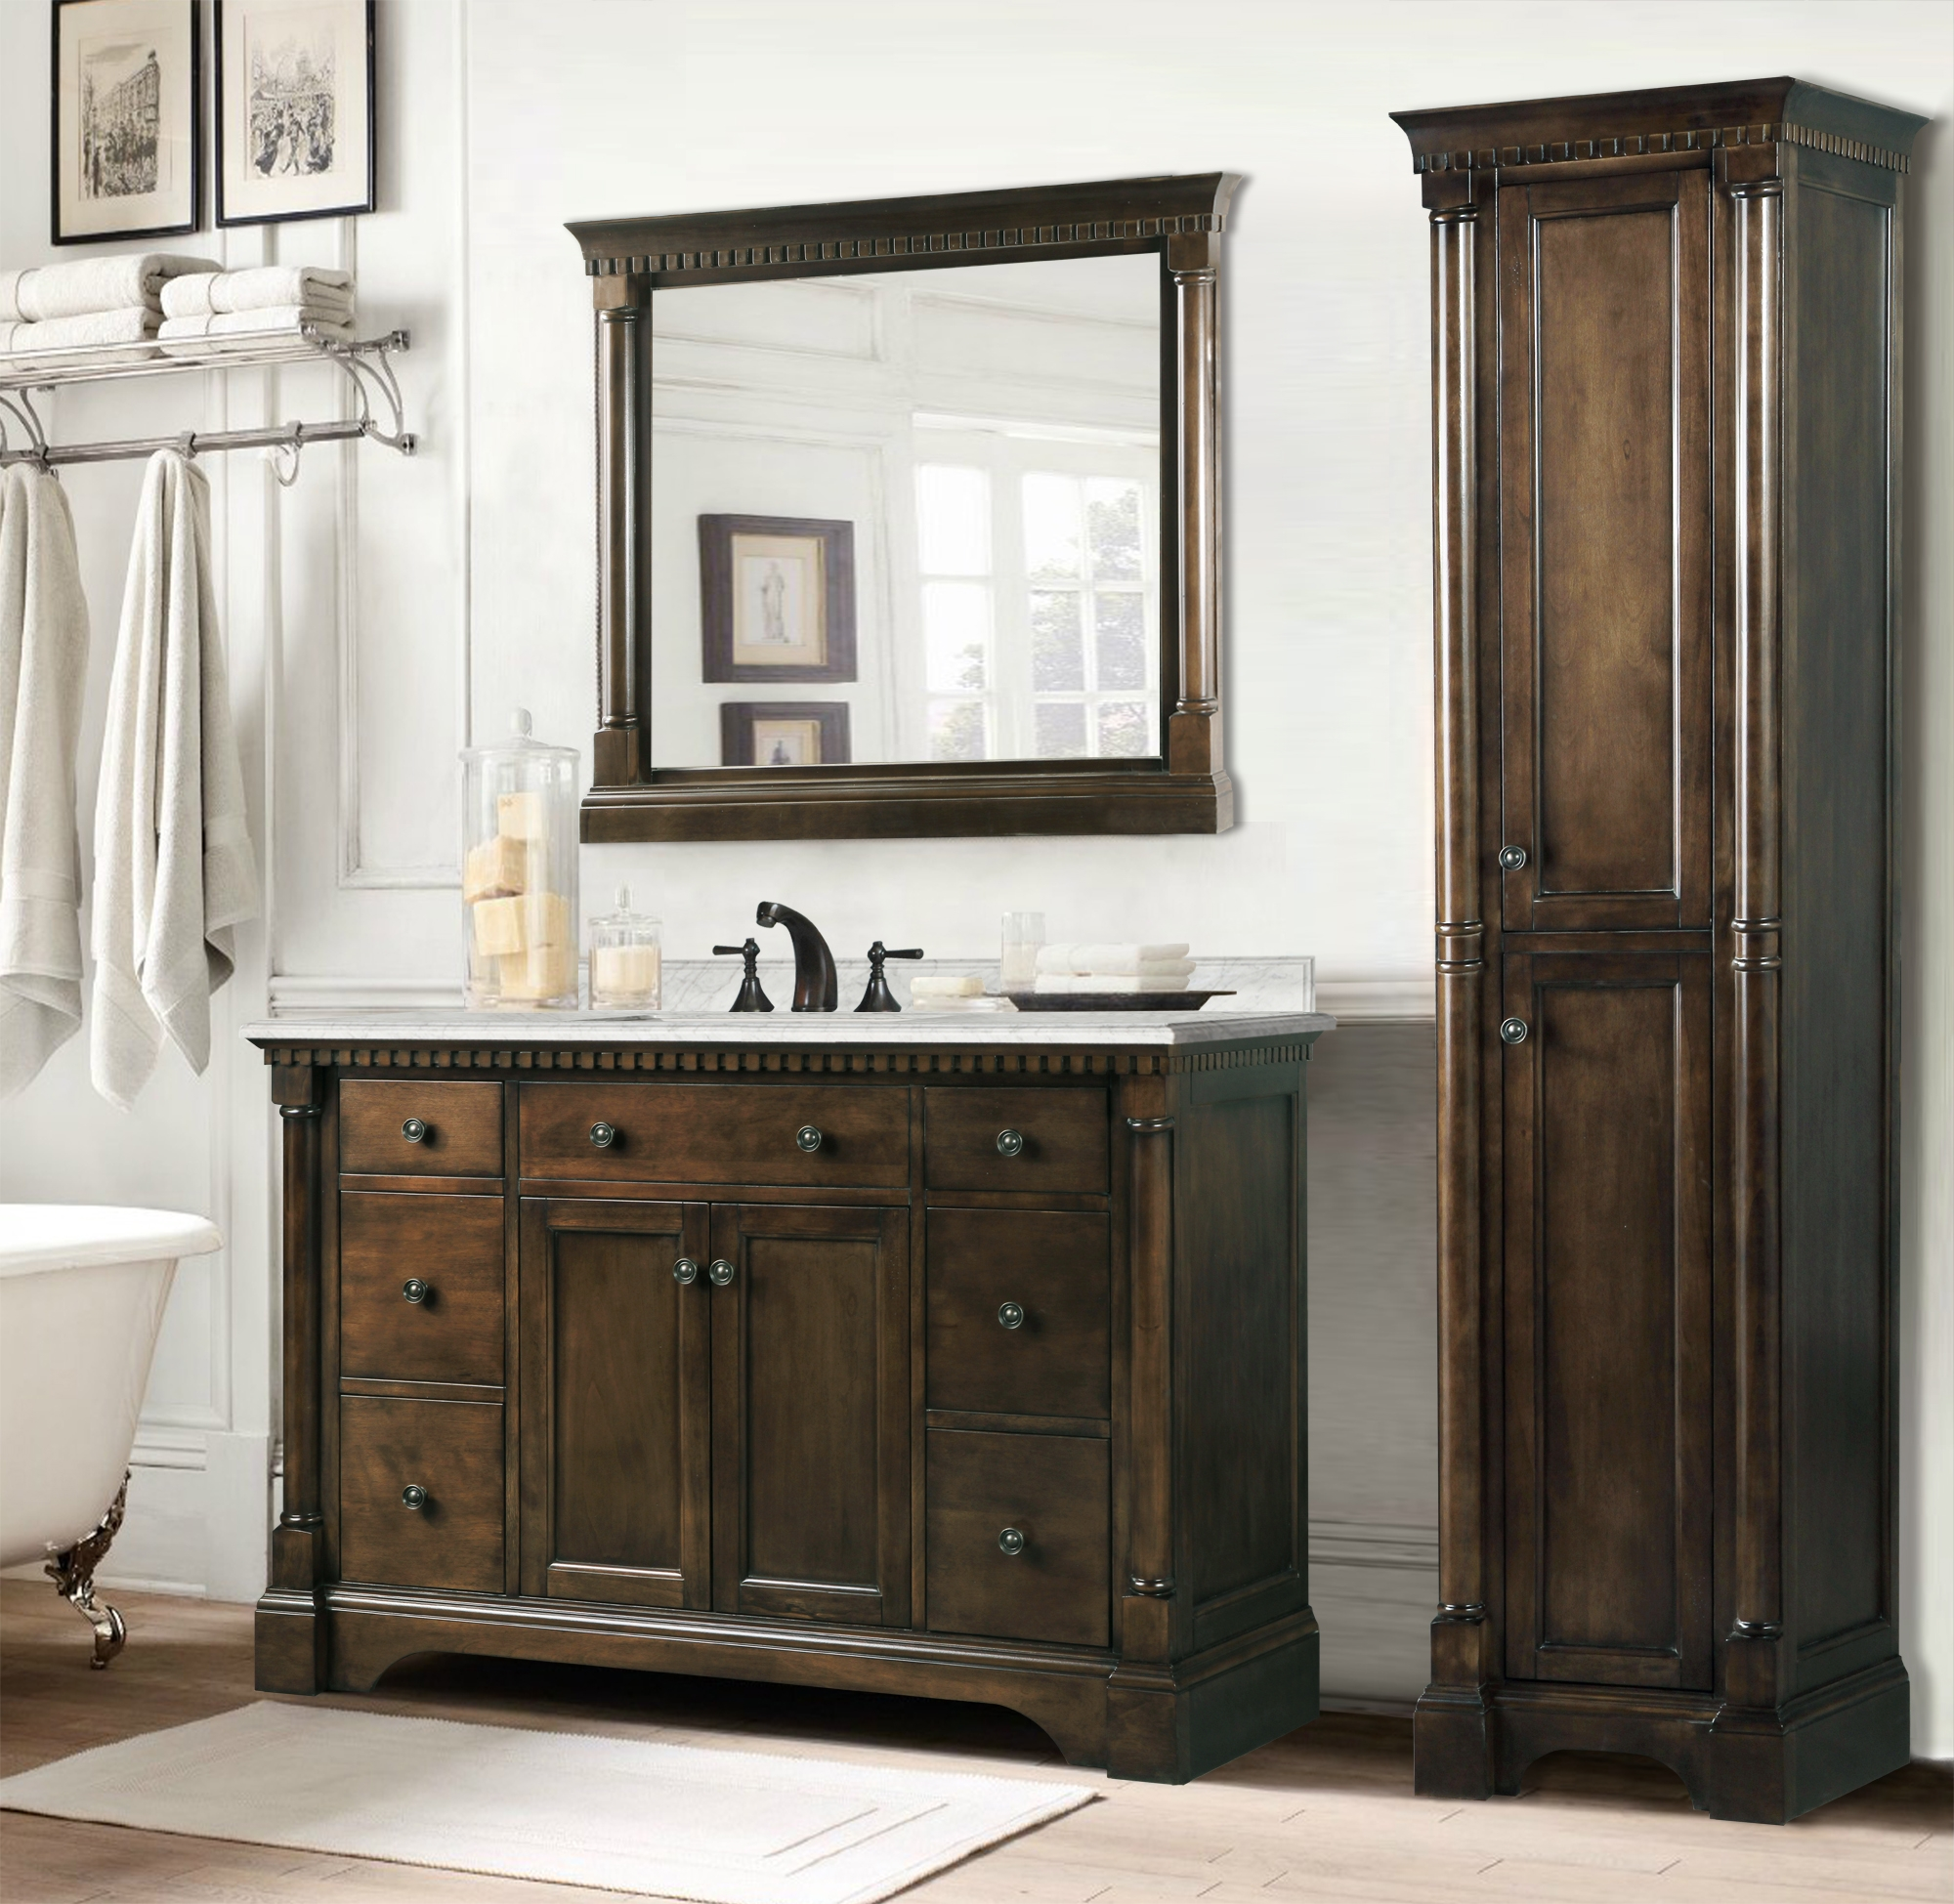 Single Bathroom Vanity Without Sink